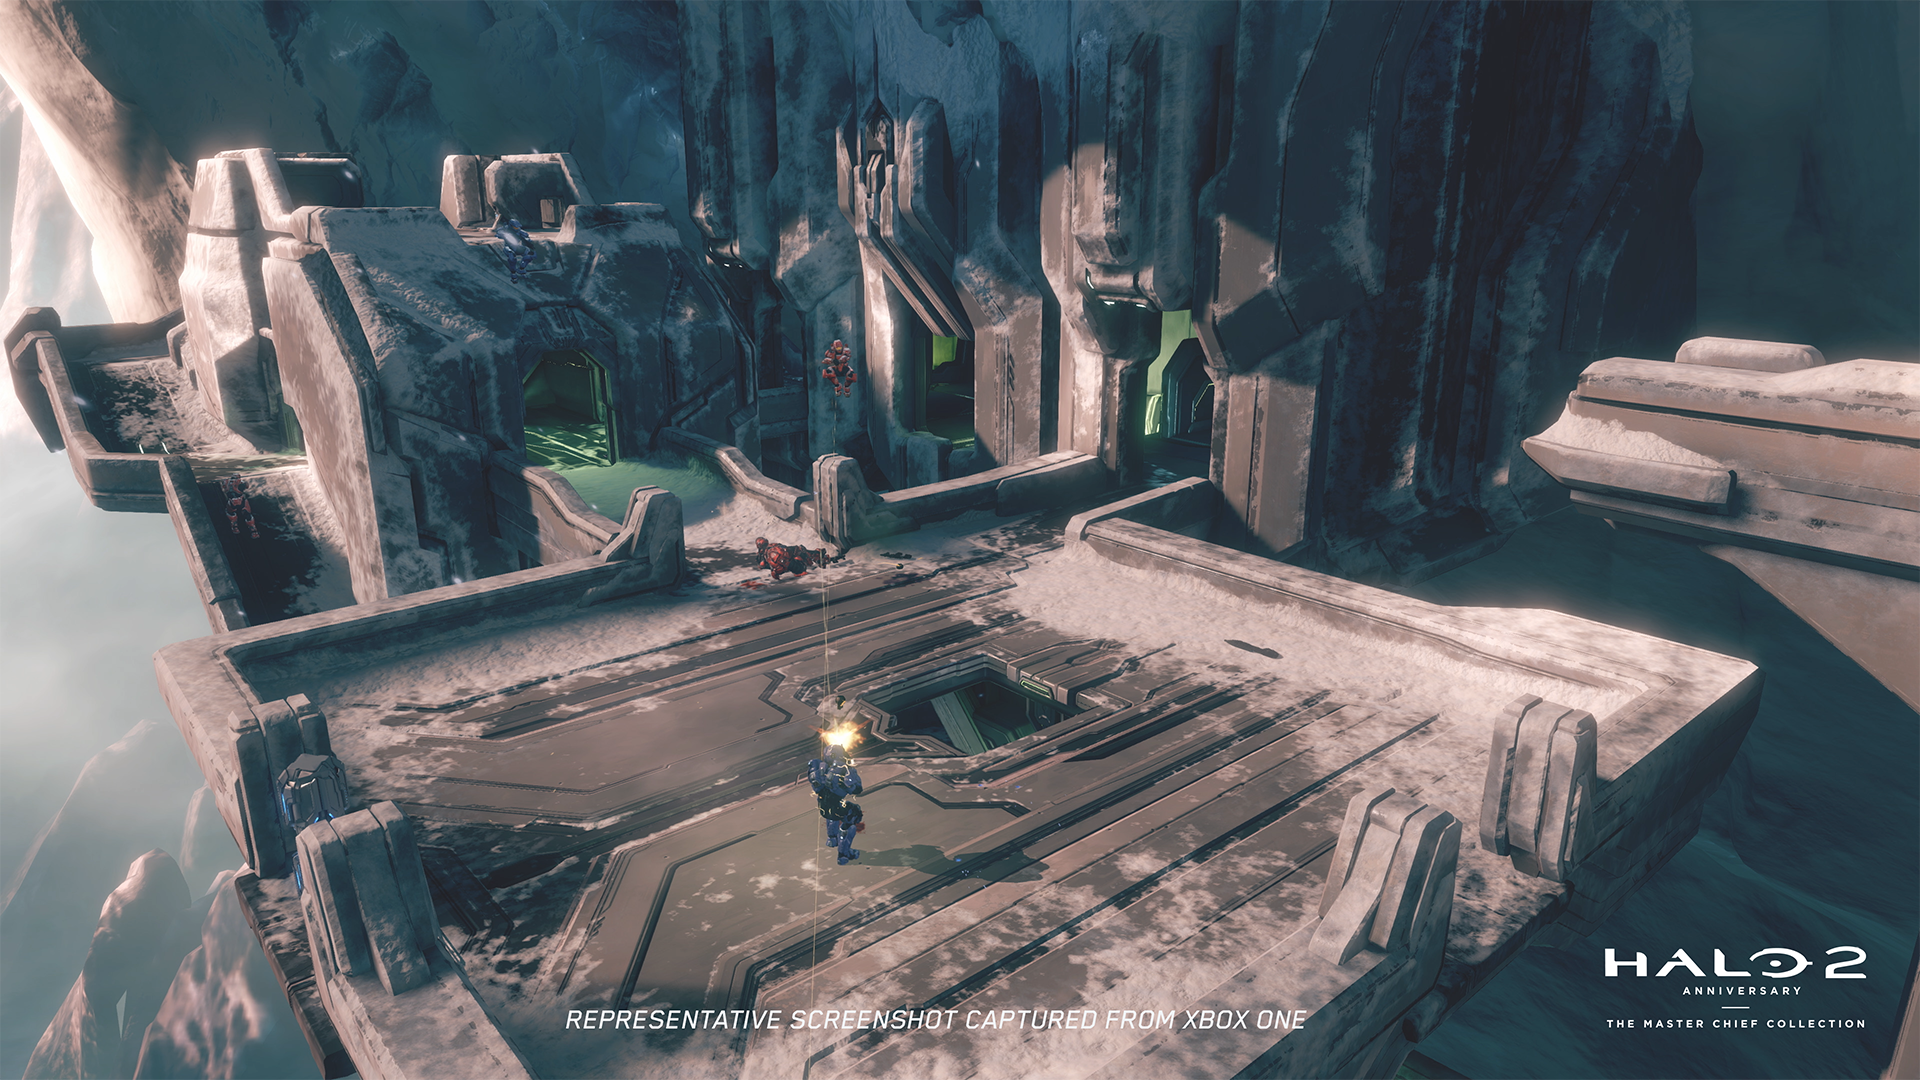 Halo-Master-Chief-Collection-2020_Halo2Anniversary_Multiplayer_08_Watermarked_1920x1080